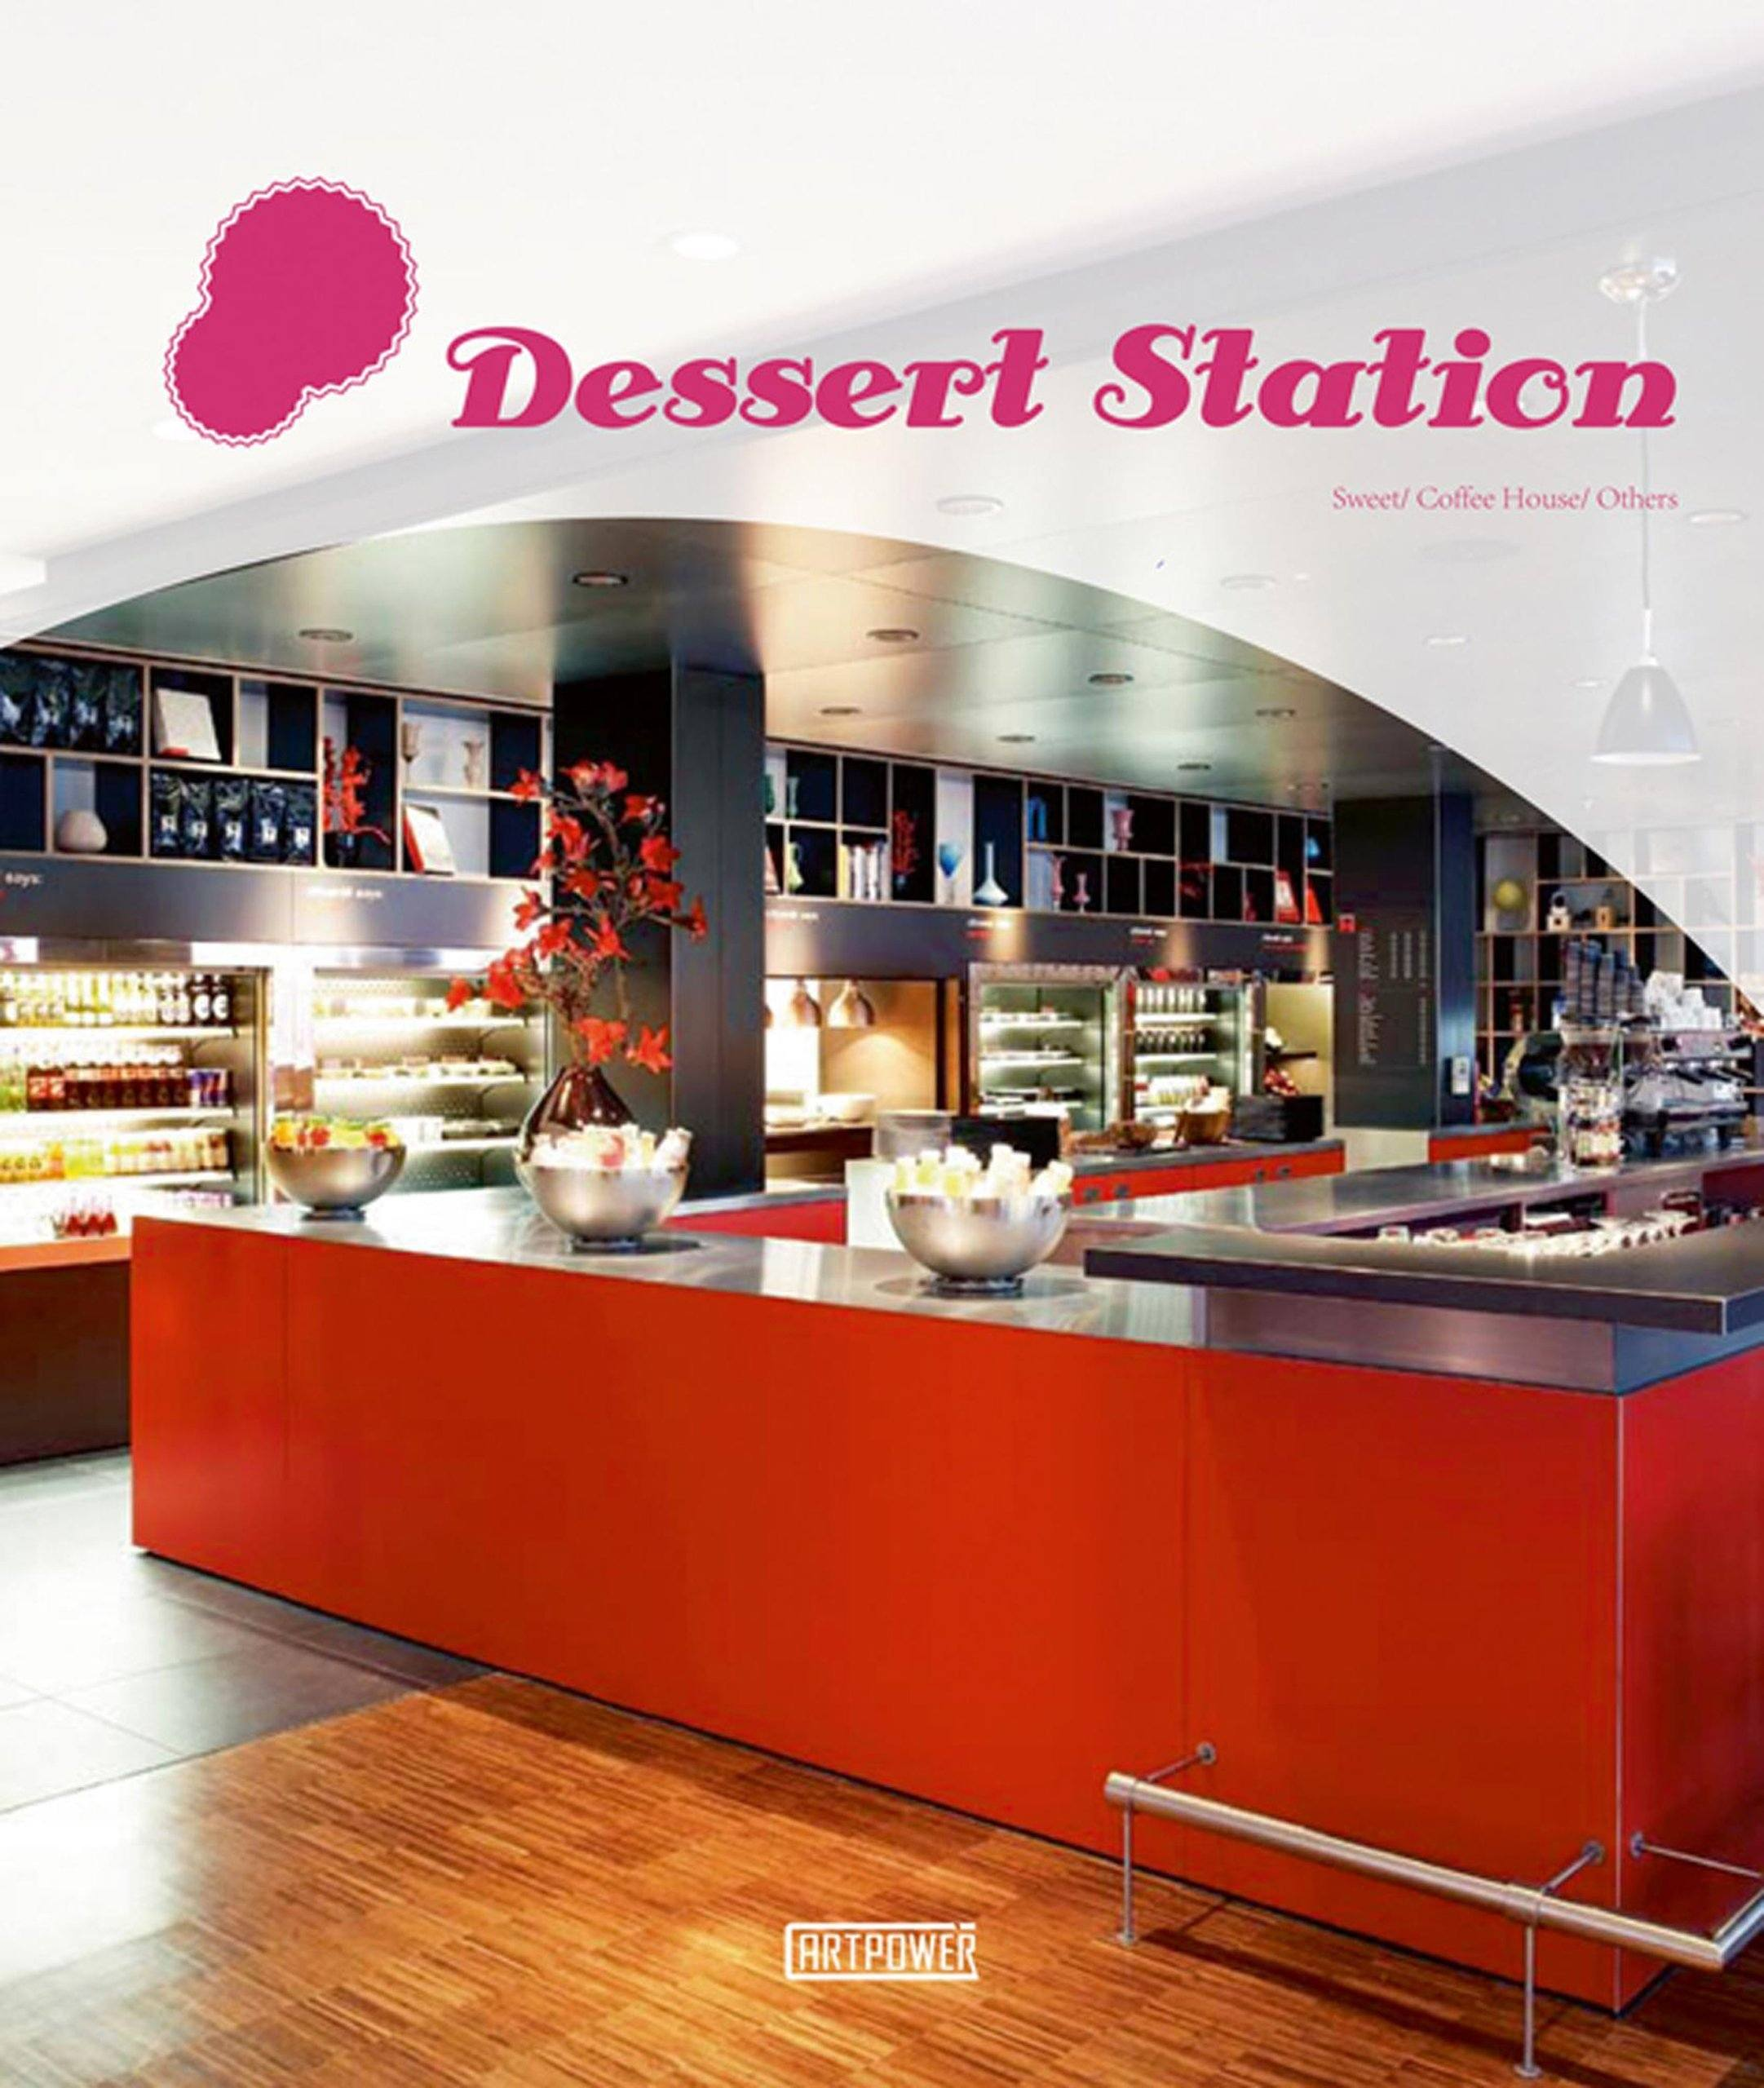 Dessert Station: sweet, coffee house, others - Books - Naiise - Naiise